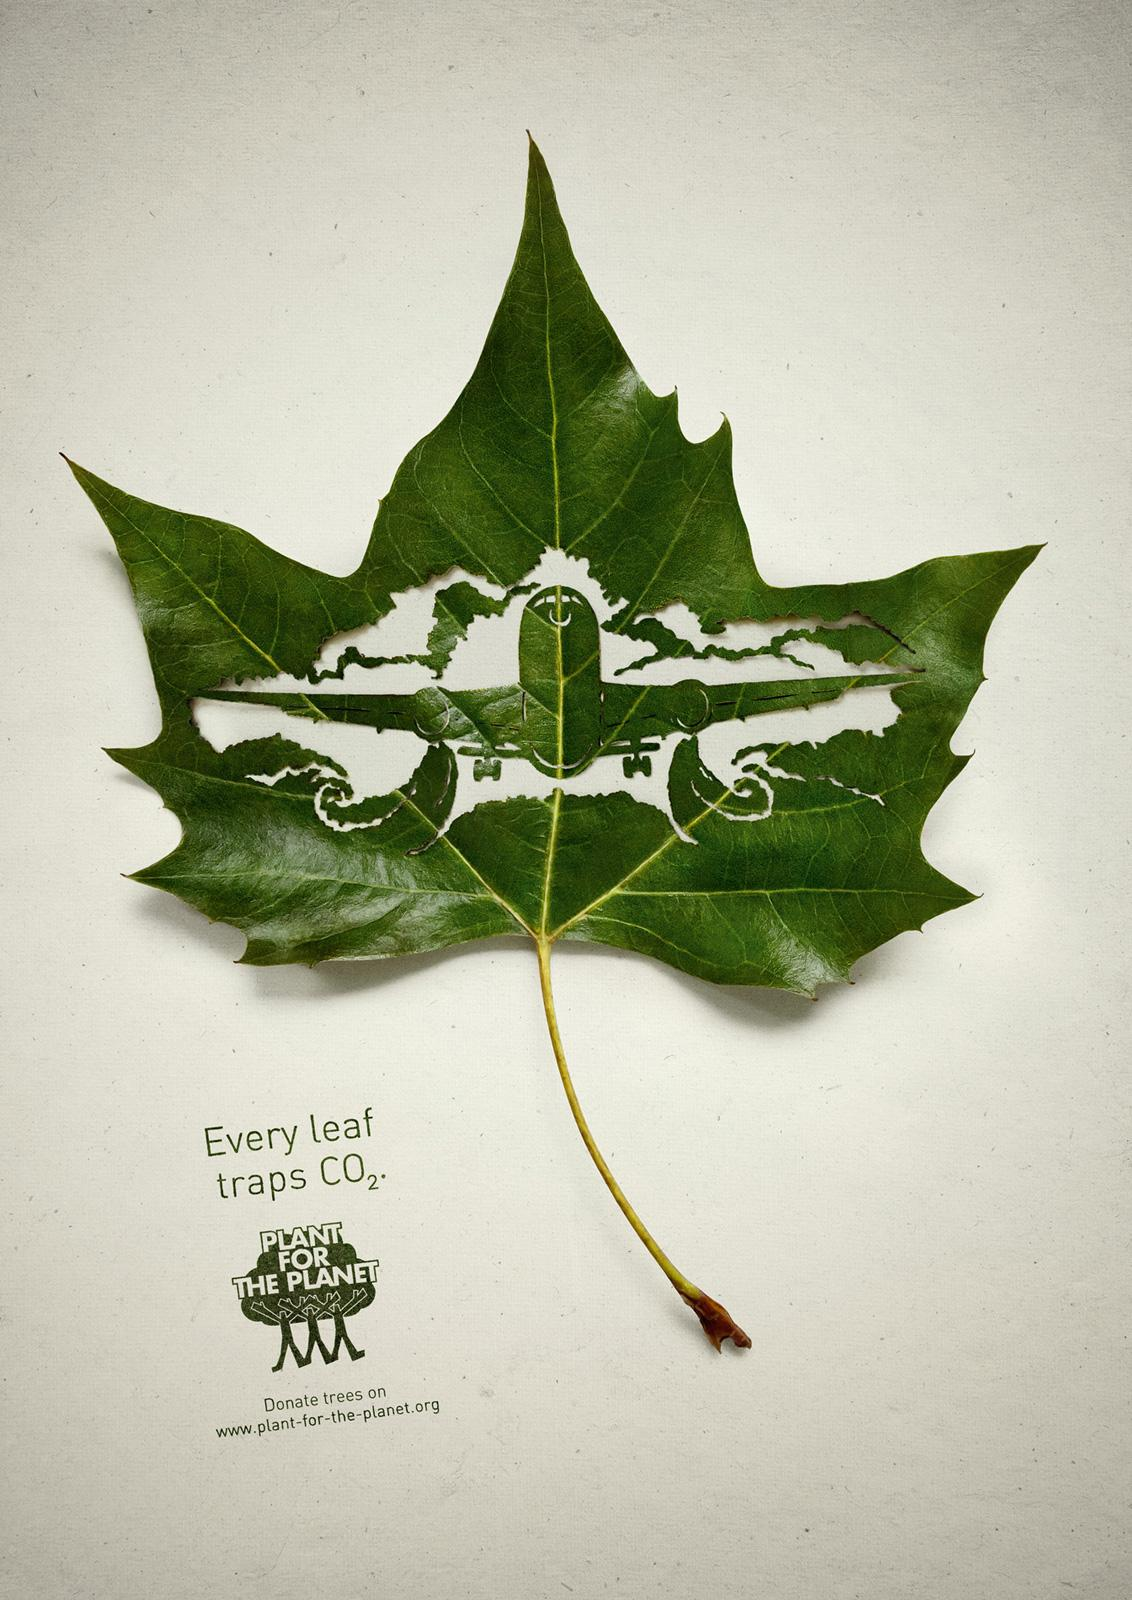 Plant for the planet Print Ad -  Plane